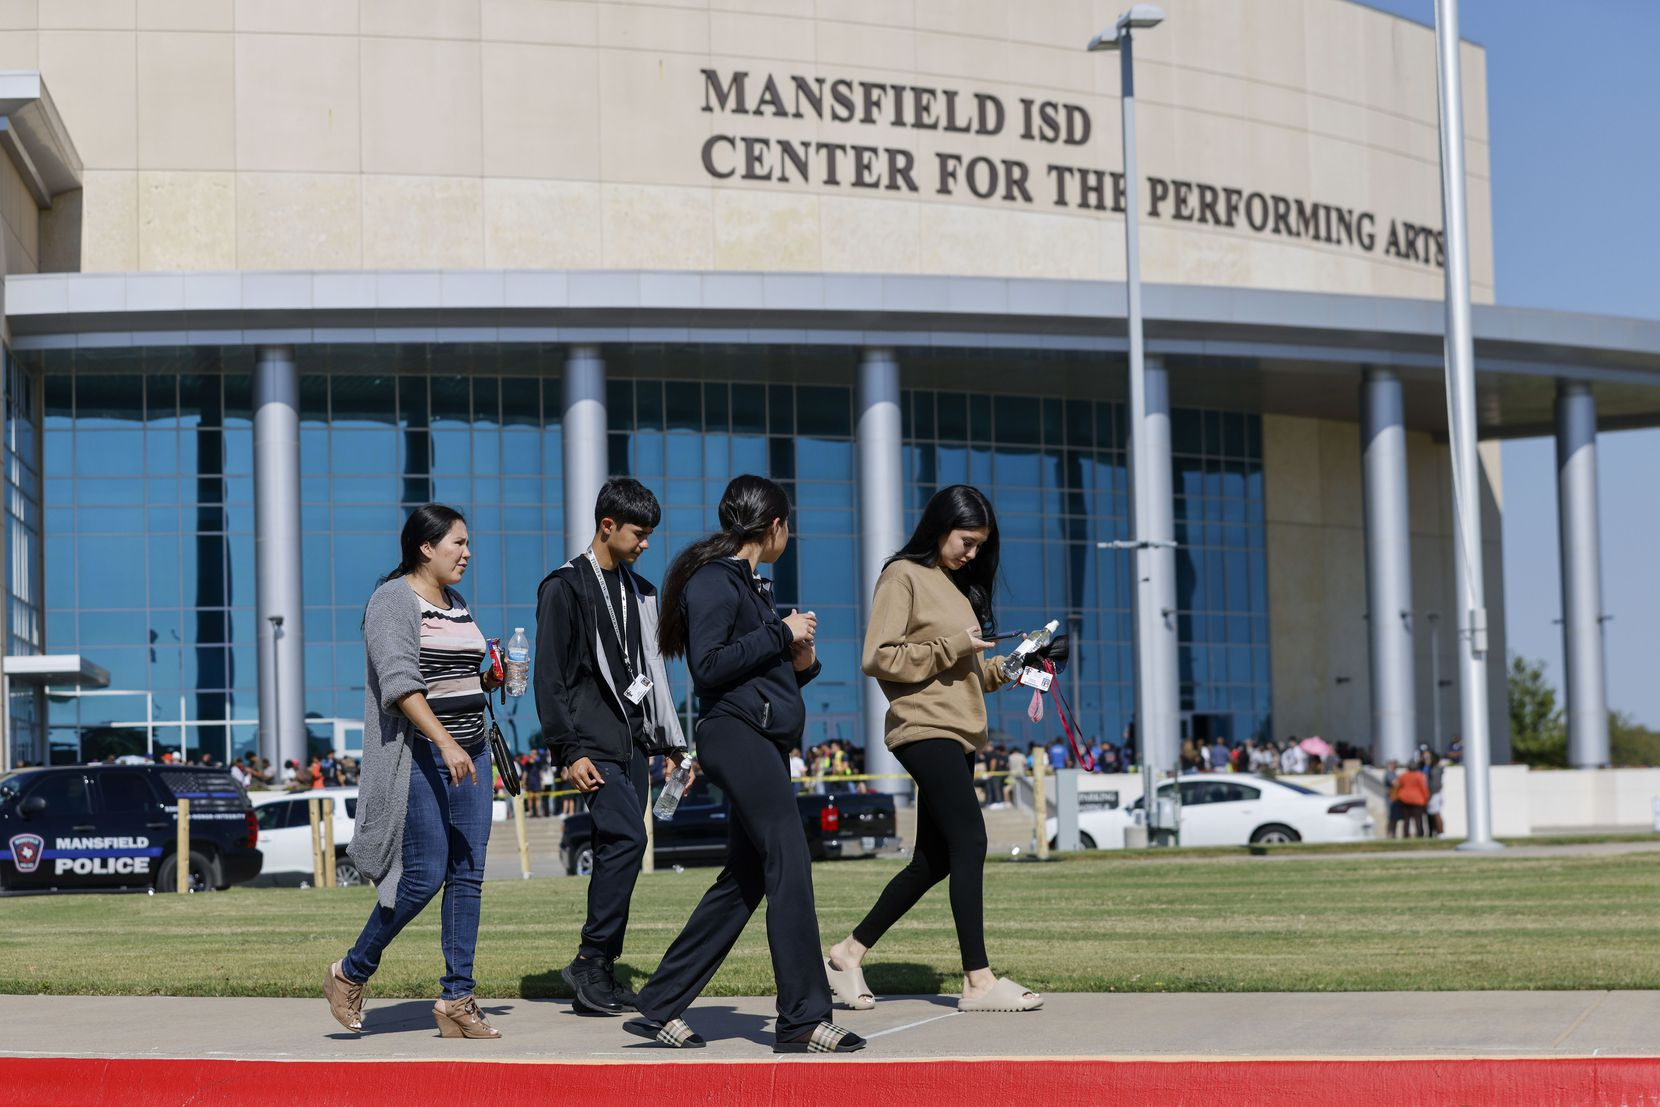 From left: Veronica Garza walks with her children, Jose Gonzalez, 15, Natalie Gonzalez, 16, and Deserae Gonzalez, 19, outside the Mansfield ISD Center for the Performing Arts.